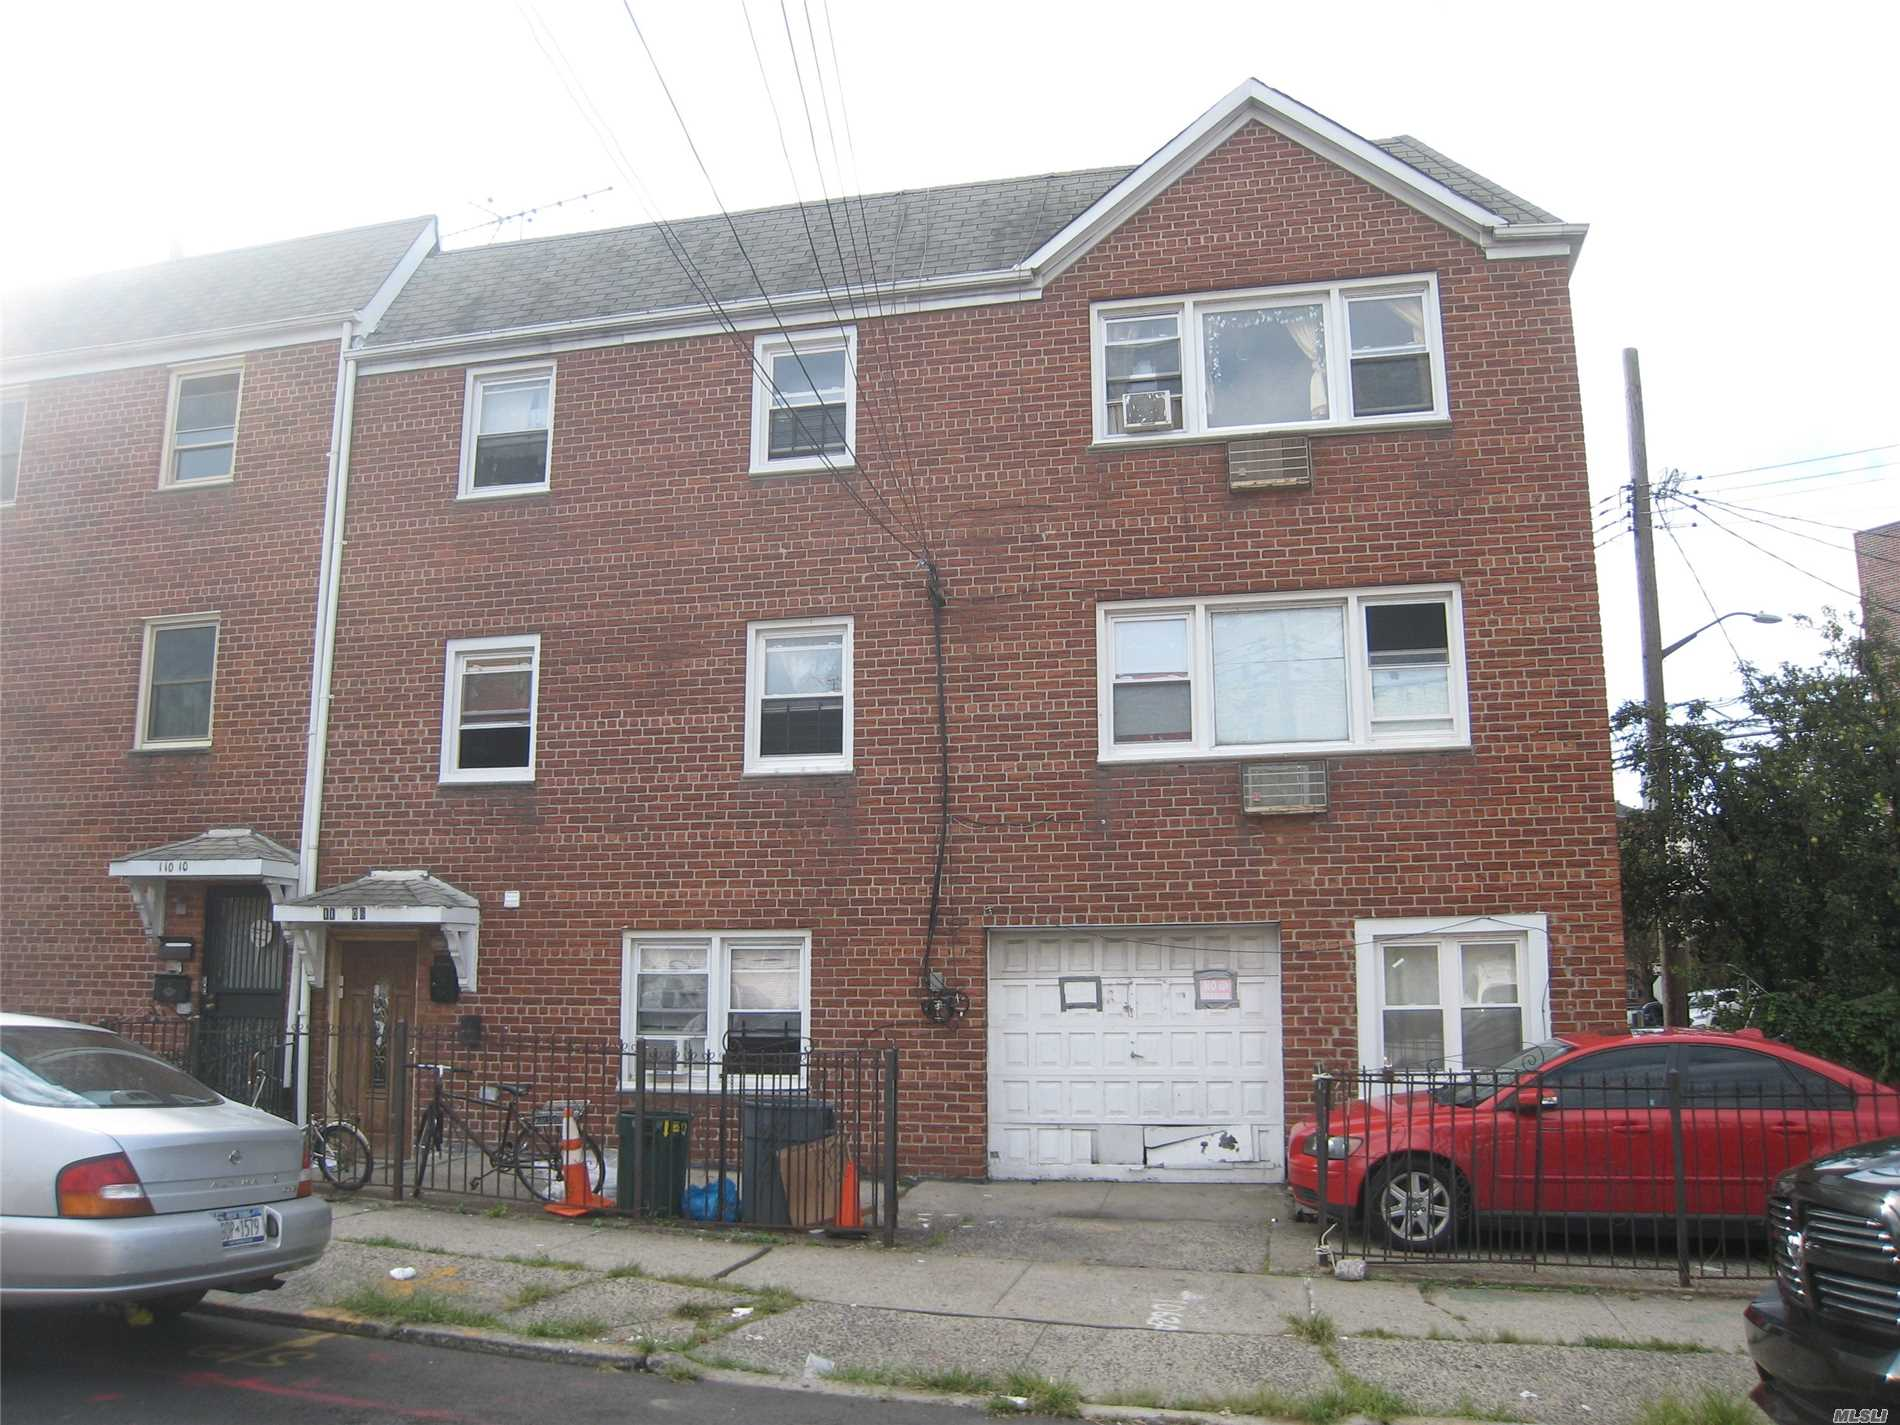 Brick 3 Family Corner Property With Garage And Private Parking. 3 Bedrooms Over 3 Bedrooms Over 1 Bedroom Unit. Sold In As-Is Condition With Existing Tenants.